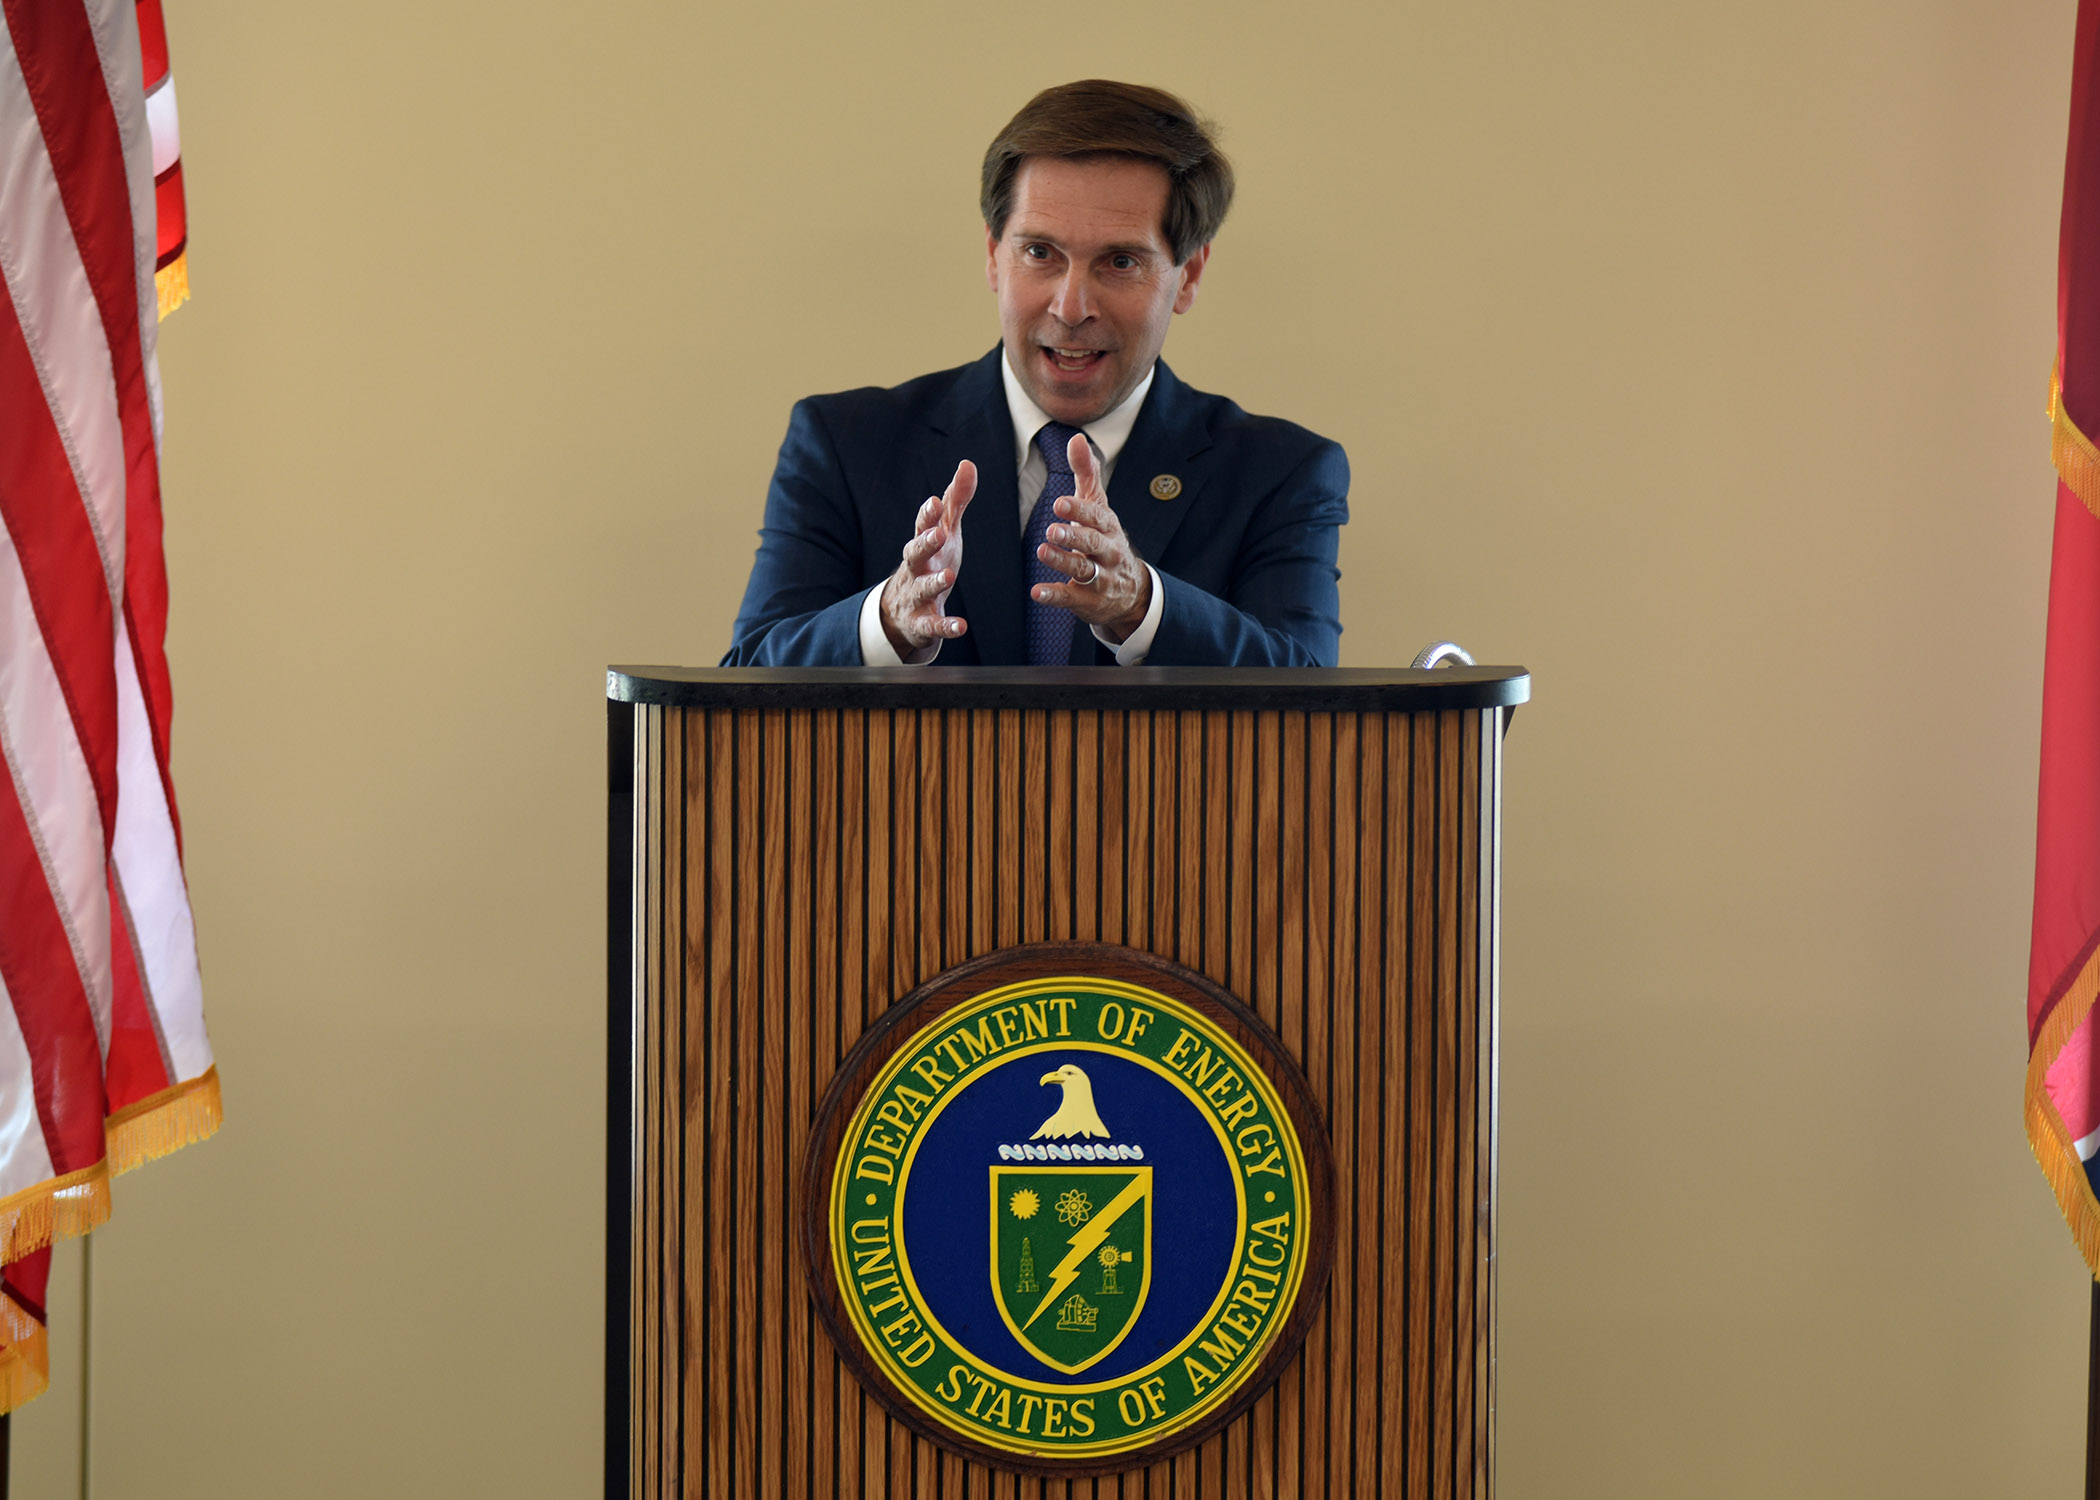 Congressman Chuck Fleischmann, Tennessee District 3, speaks during the dedication of the new Construction Support Building Nov. 20, 2017 at the Y-12 National Security Complex in Oak Ridge, Tenn. (Photo by Lee Roberts)